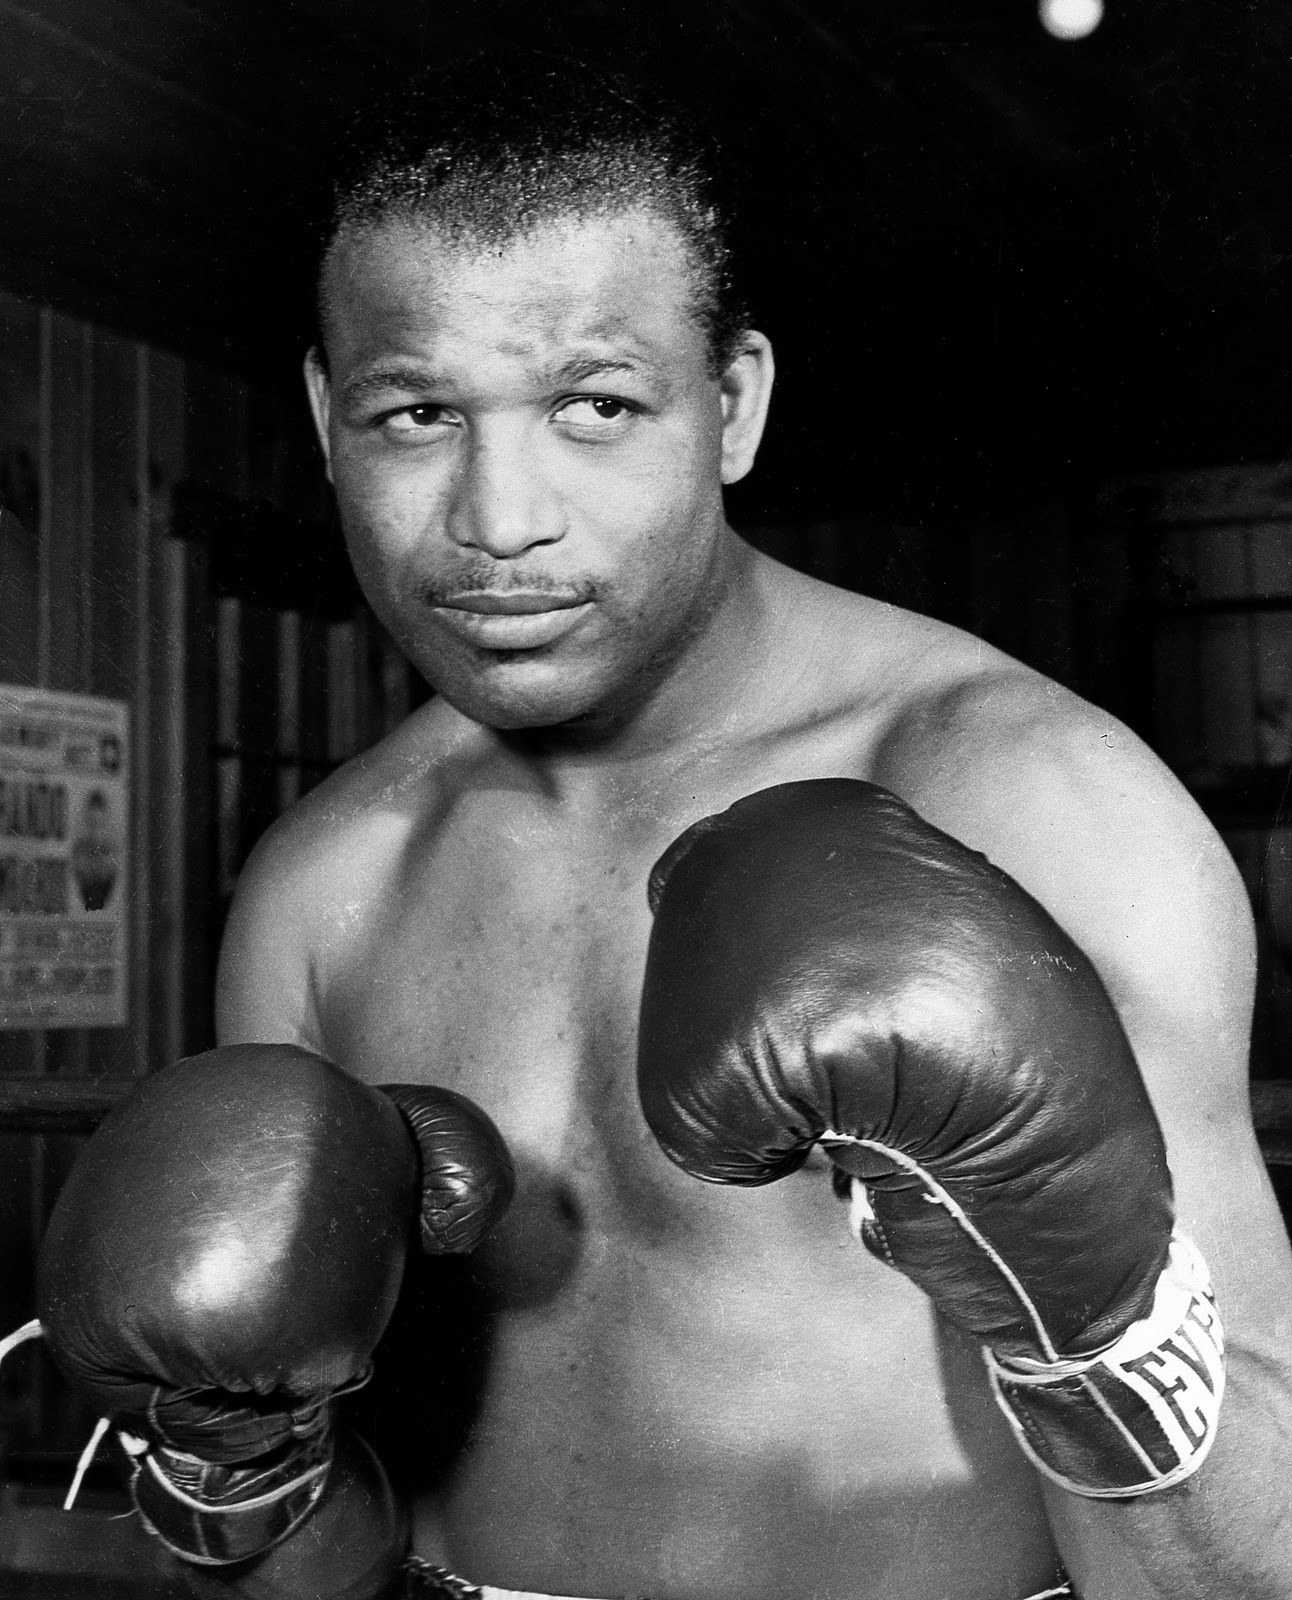 Consensus Pound-for-Pound Greatest Boxer of all time Sugar Ray Robinson. Total Pro and Amateur Record 258-19-6 (2) (177 KO's). World Welterweight Champion 1946-1951, World Middleweight Champion 5 times from 1951-1960, one time World Light Heavyweight Title Challenger.